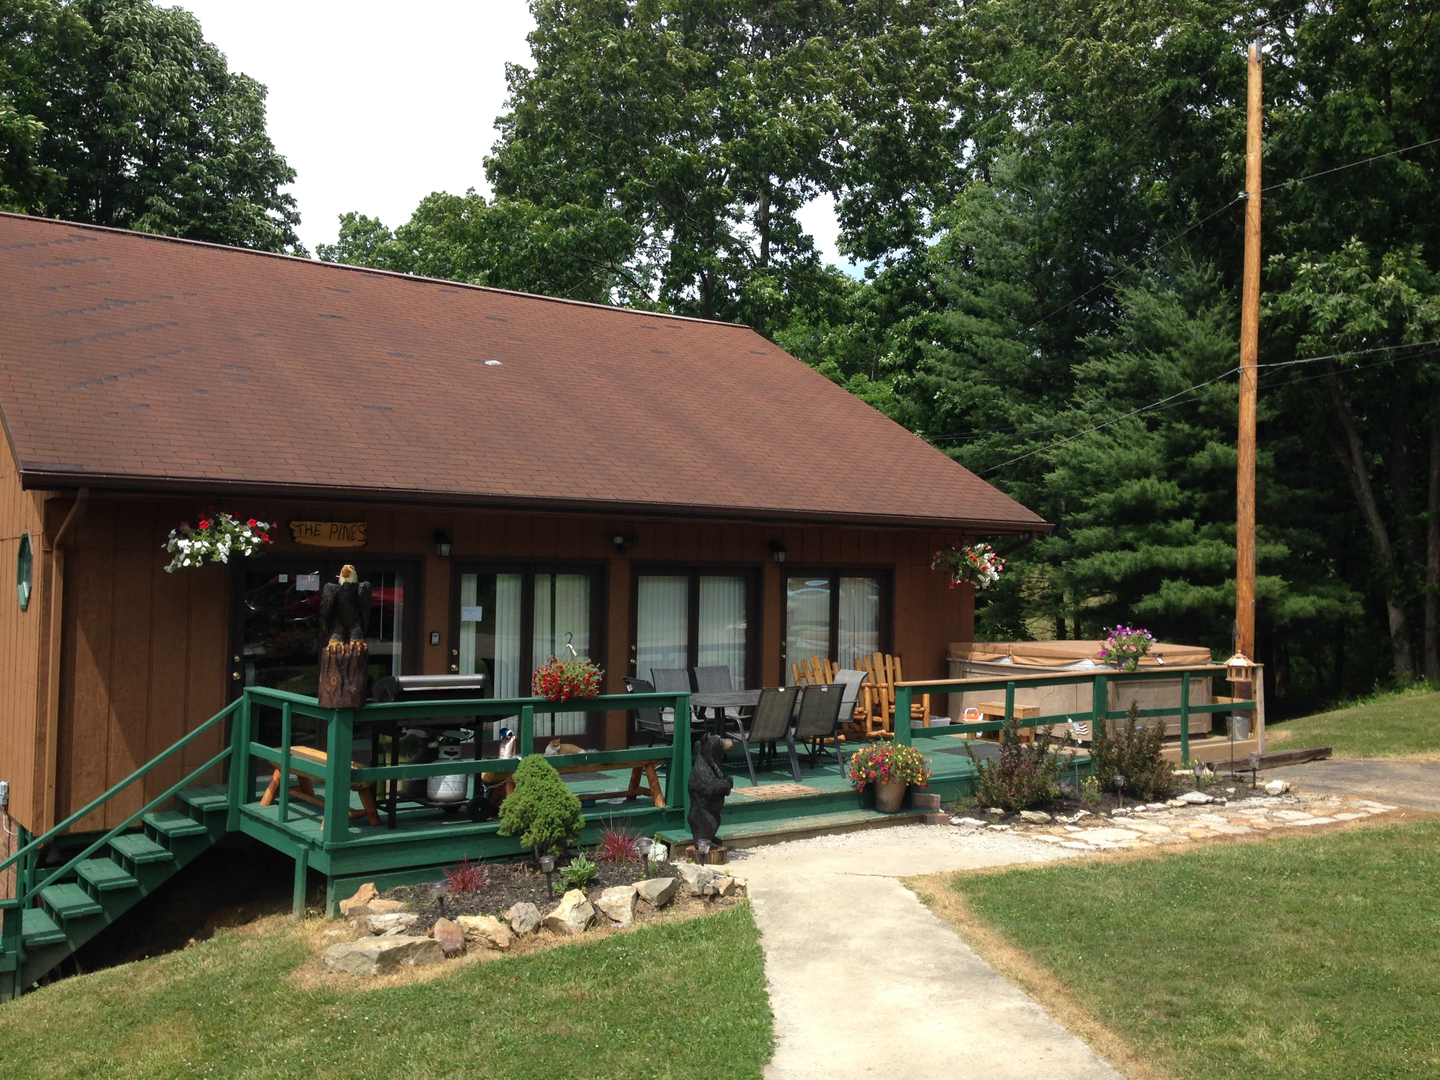 lodge and rentals hocking hills the pines alloworigin ohio disposition cabins accesskeyid cabin